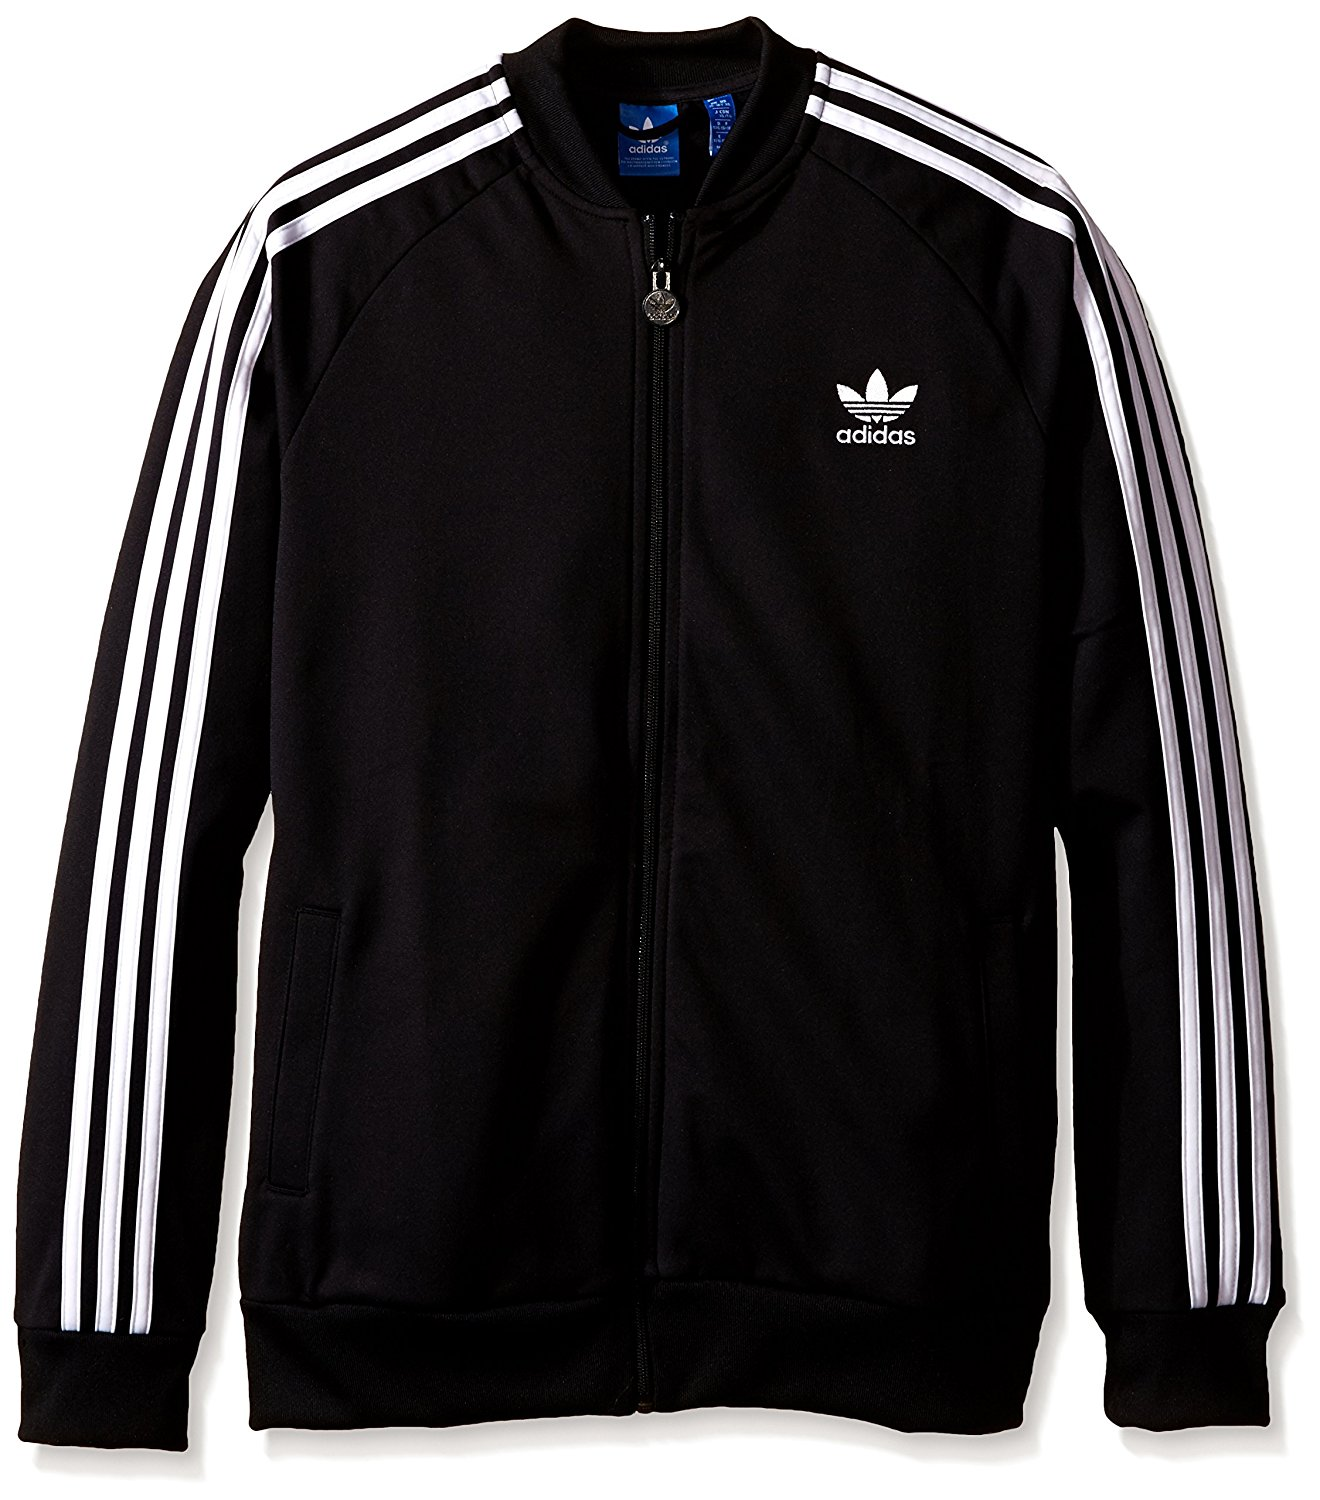 adidas originals jacket designed to excel. Black Bedroom Furniture Sets. Home Design Ideas